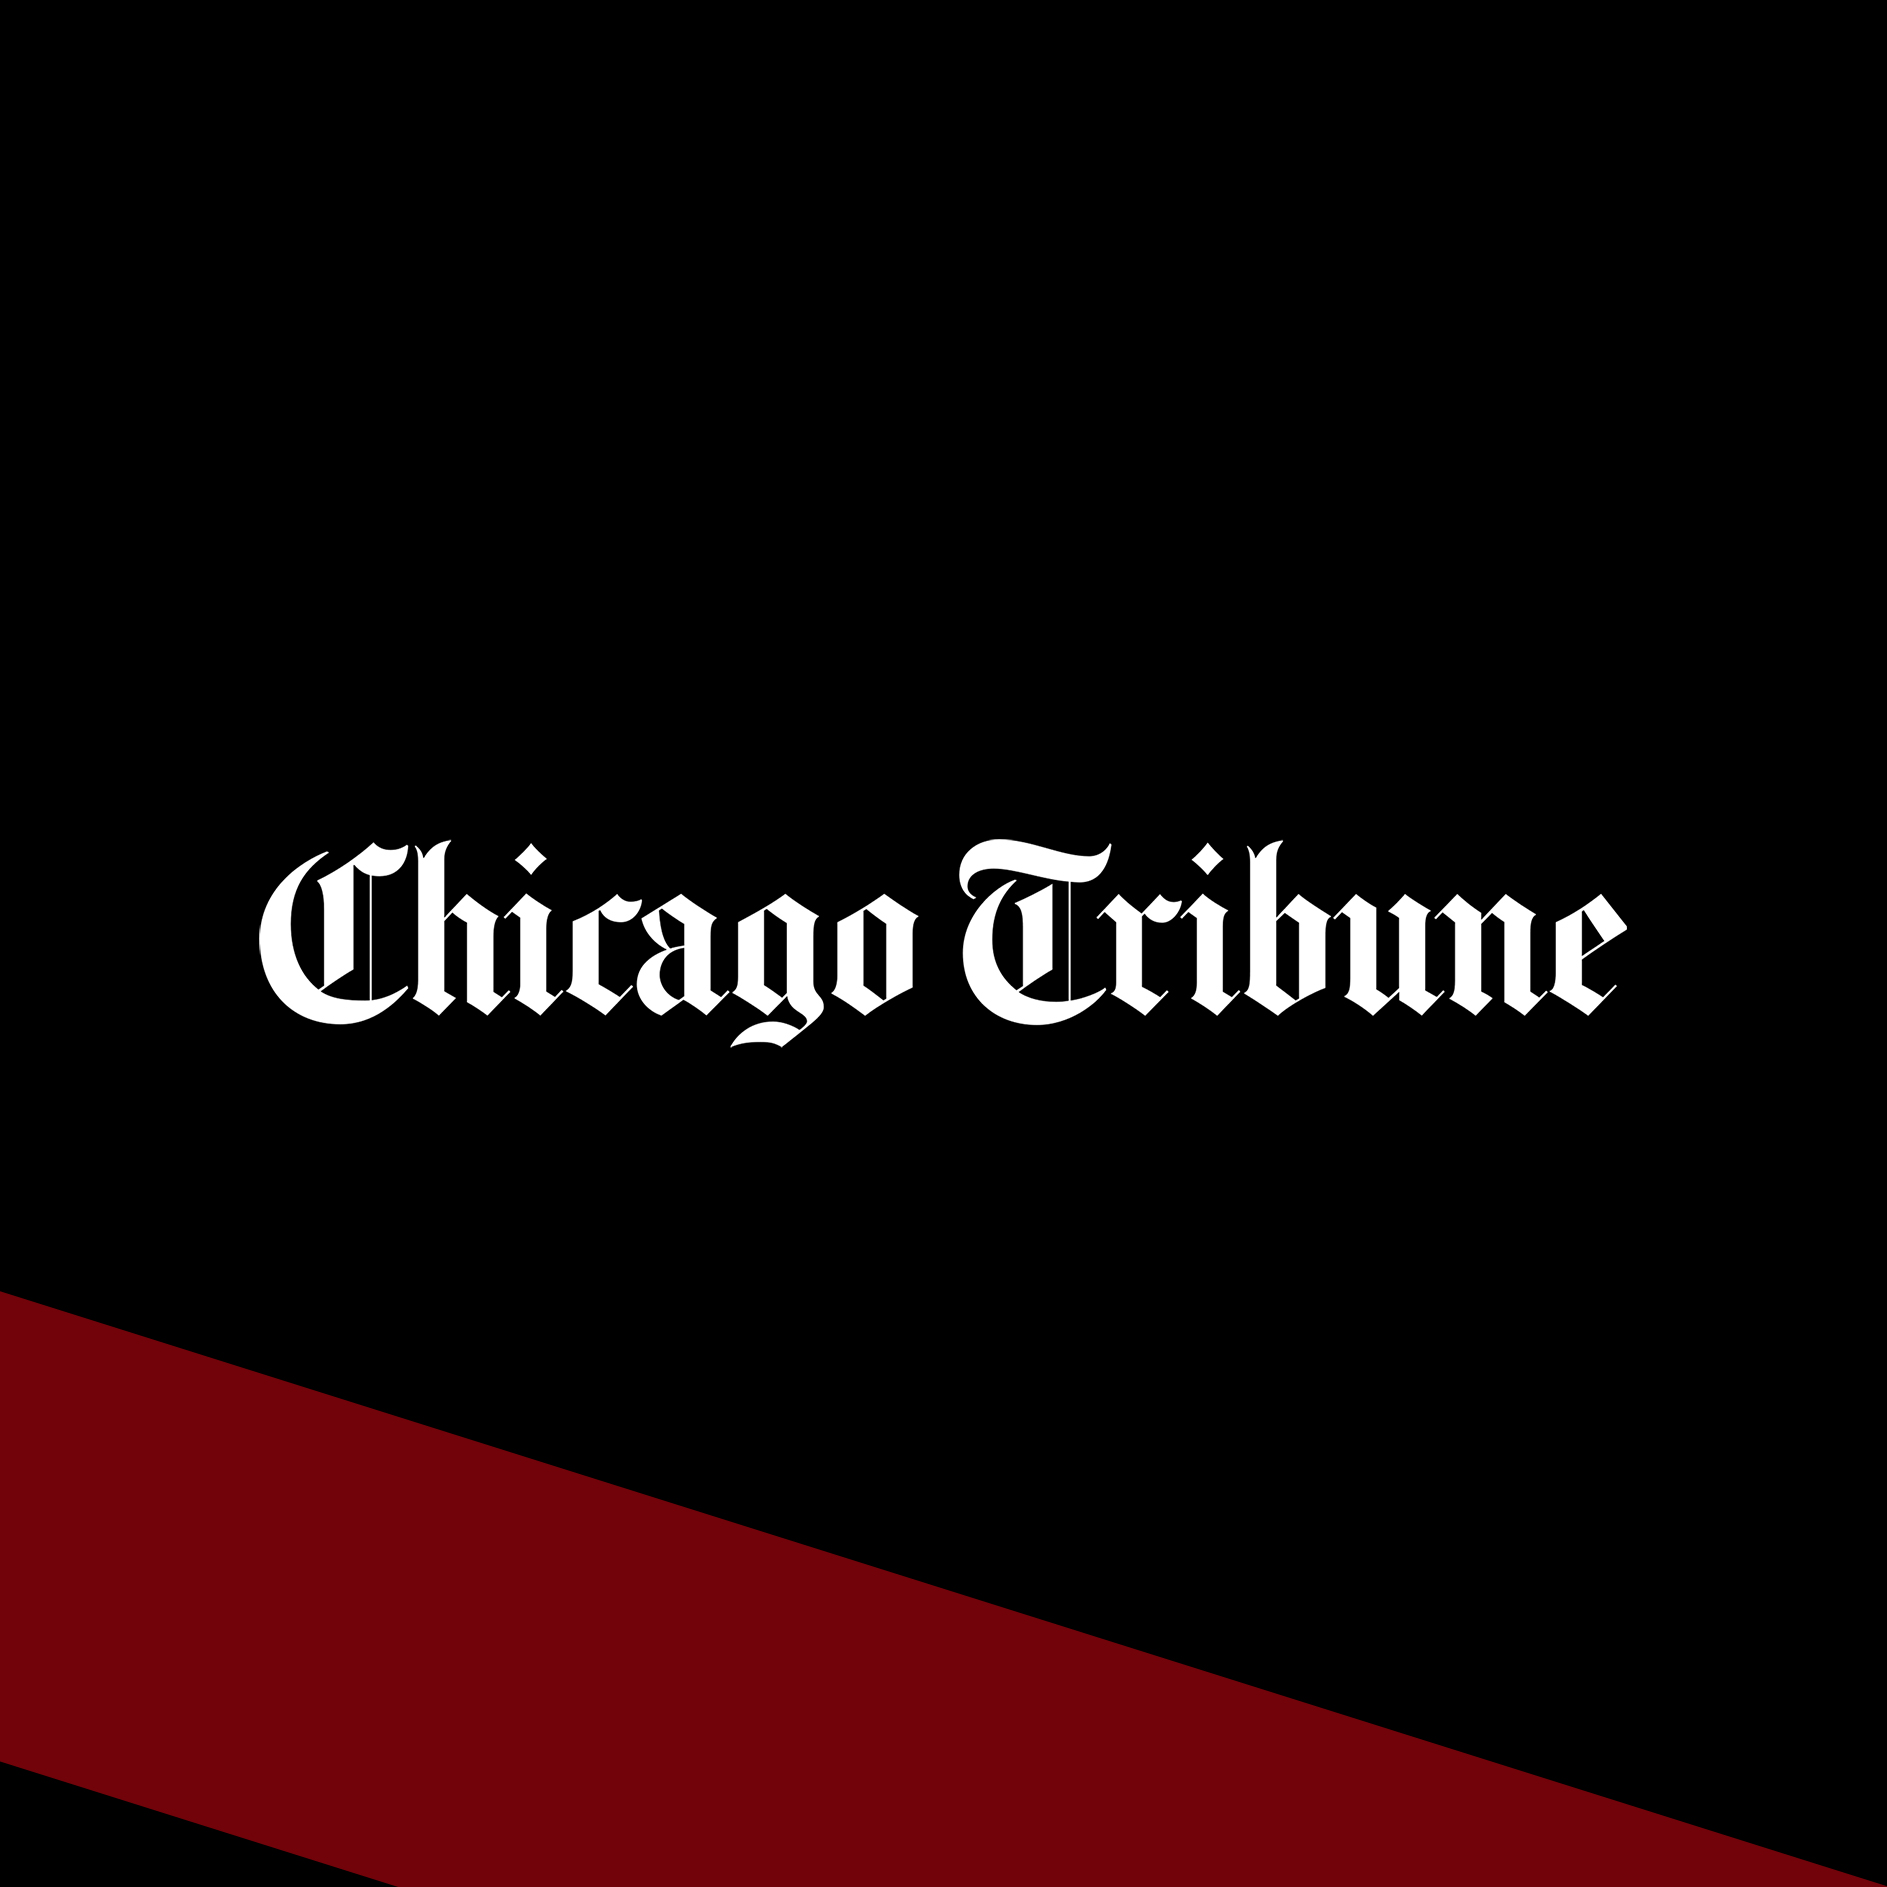 Chicago Tribune.jpg